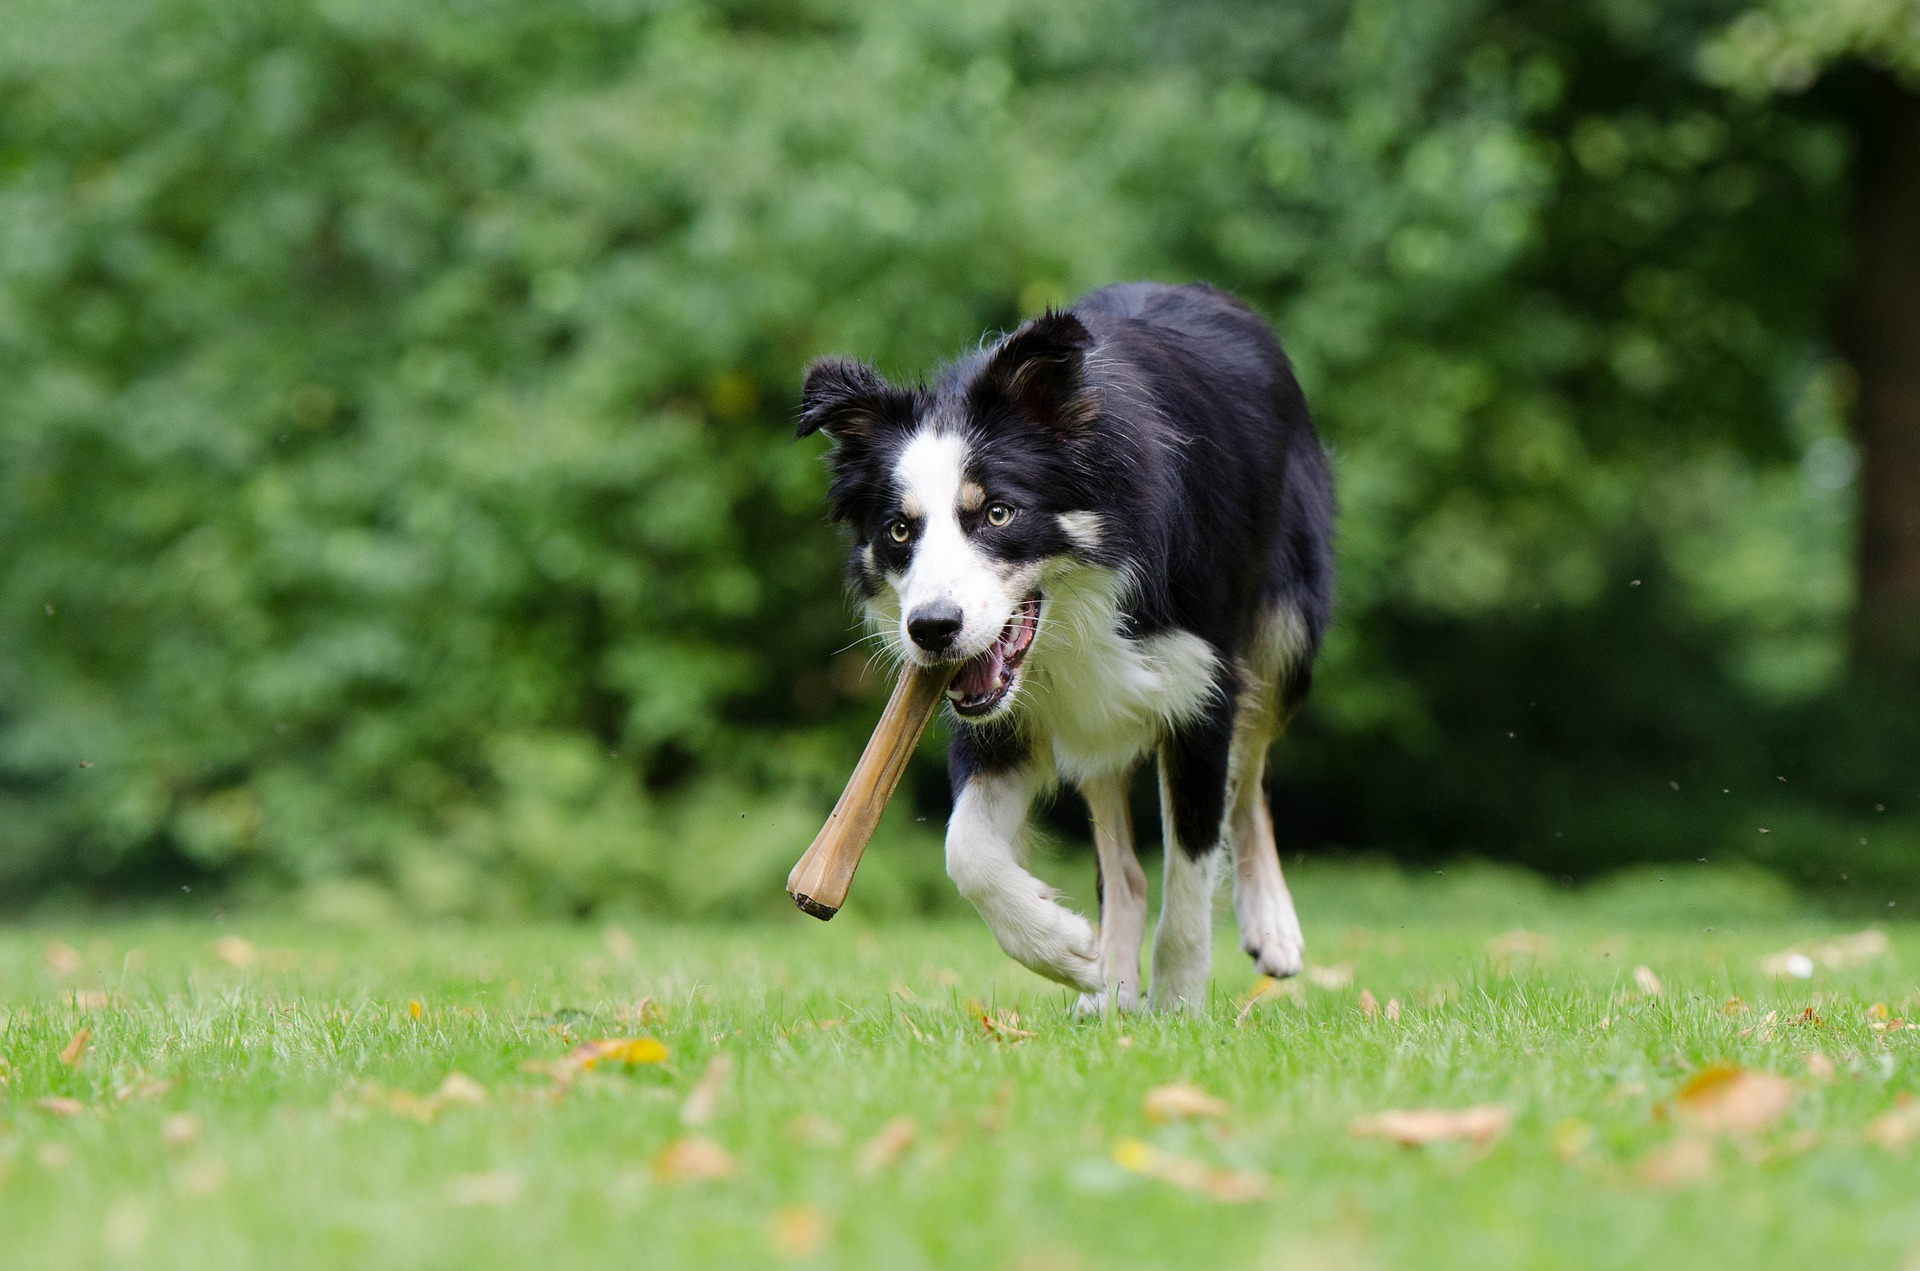 Chew on This, Not That: How to Choose the Safest Chew Toys for Your Dog